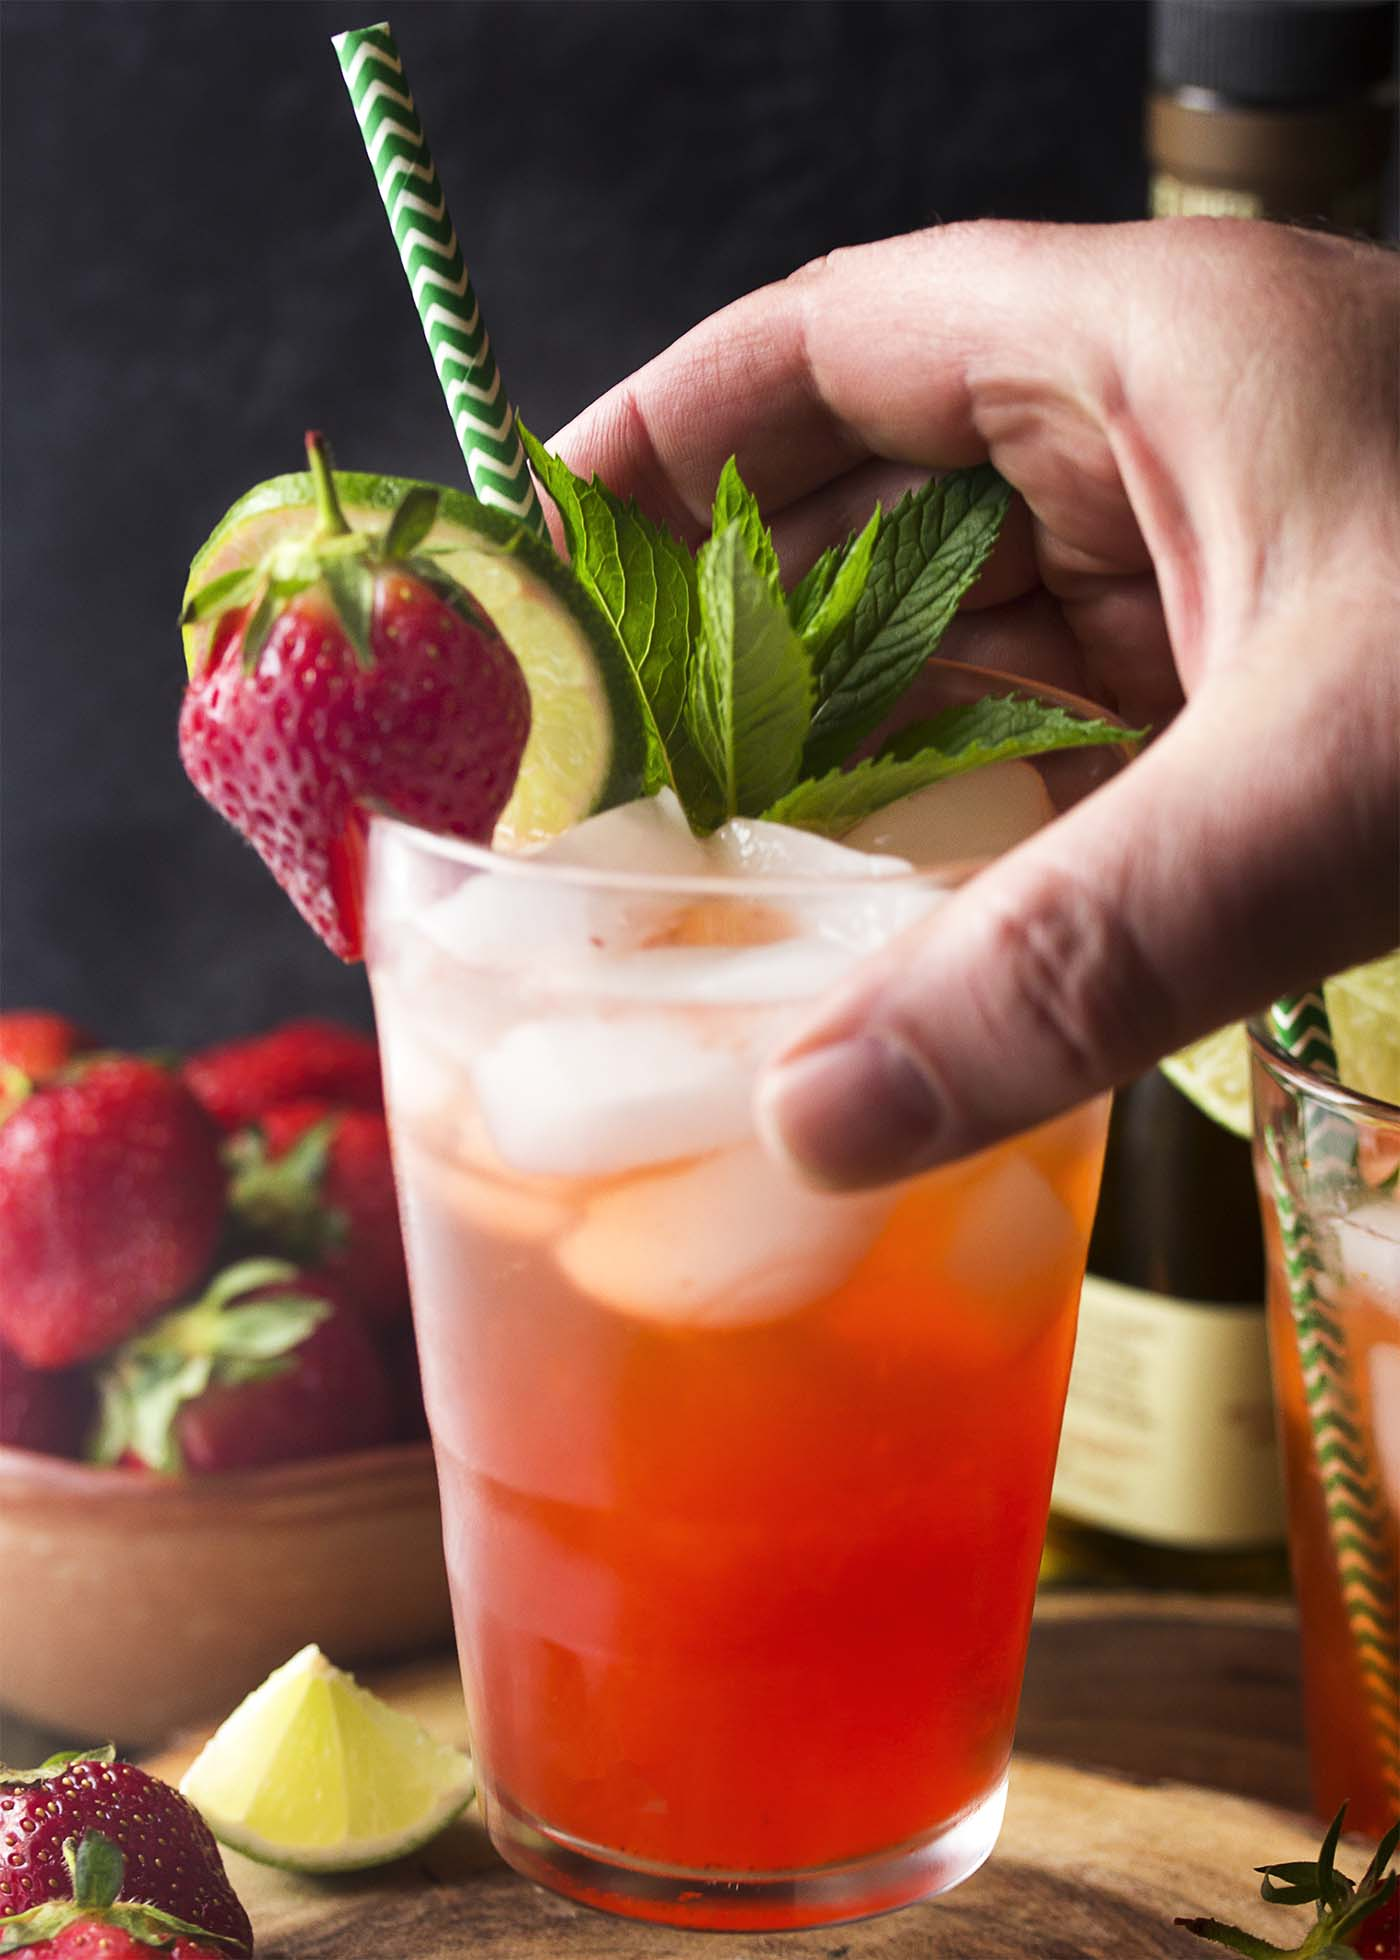 A hand lifting up a pink drink in a tall glass garnished by strawberry, lime, and mint.